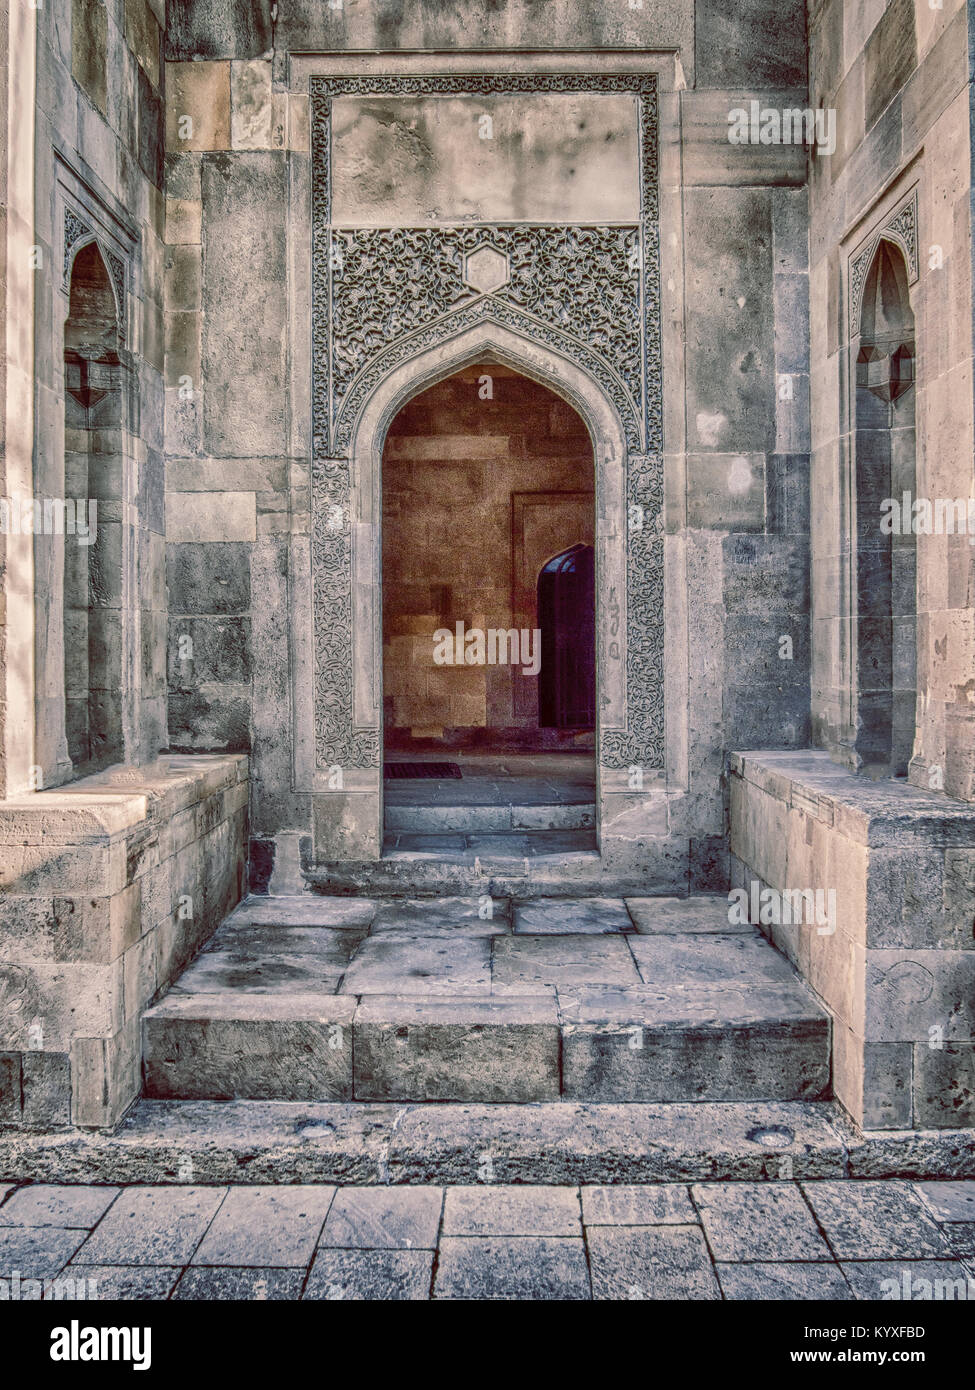 Asian style ancient archway in Baku old town - Stock Image